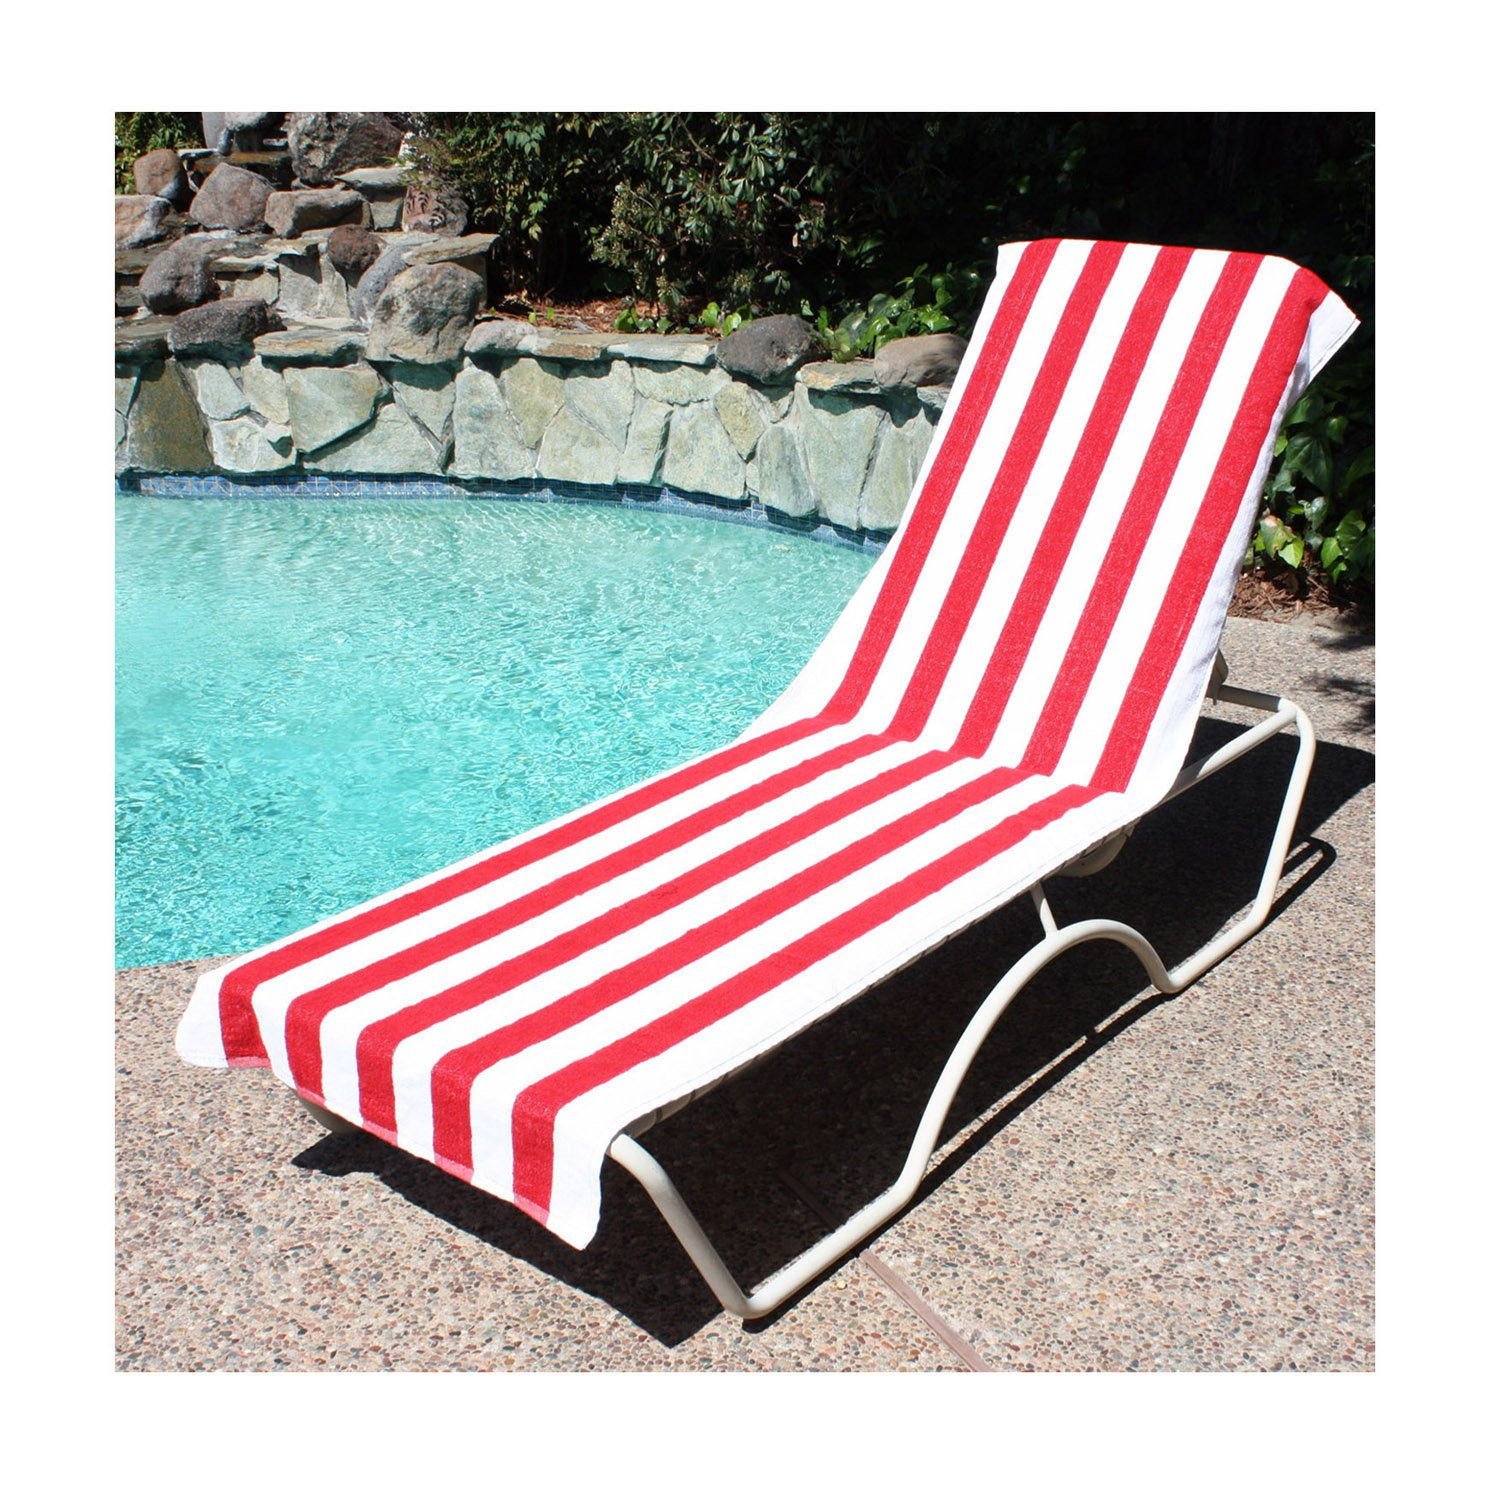 garden com dp chs lounge chairs ostrich chaise chair outdoor beach amazon